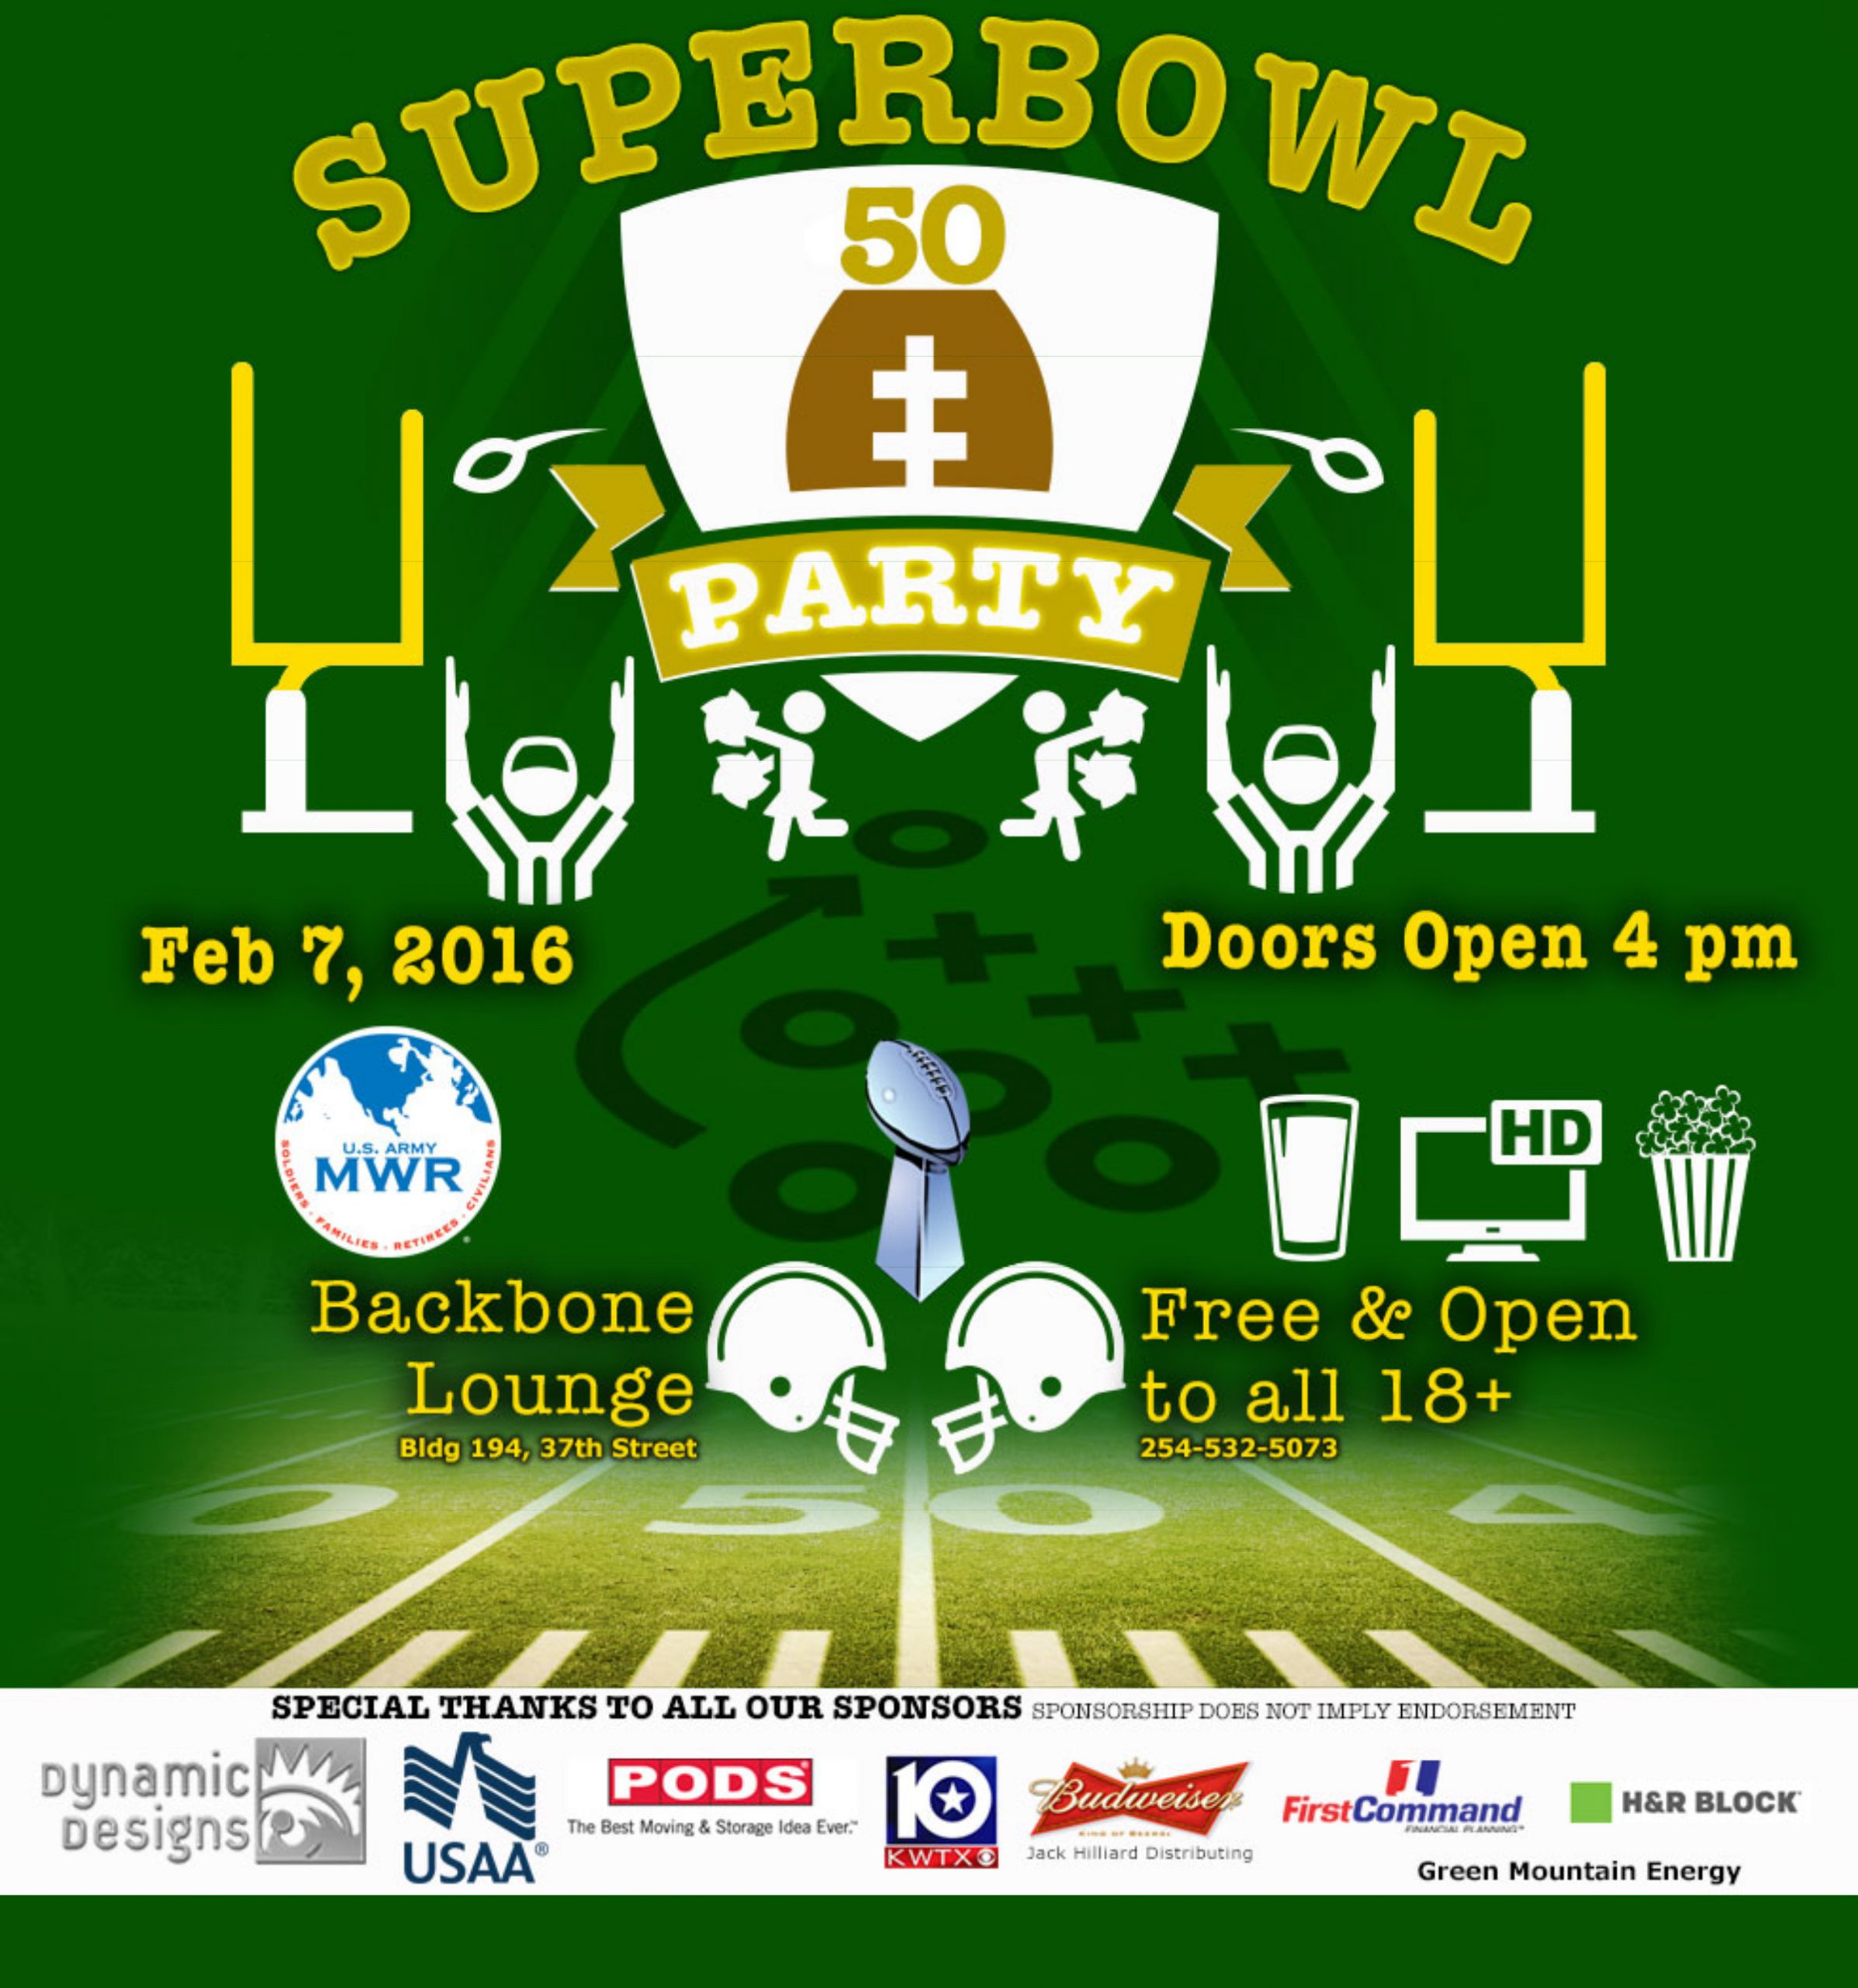 Superbowl 50 Party, Feb 7, 2016